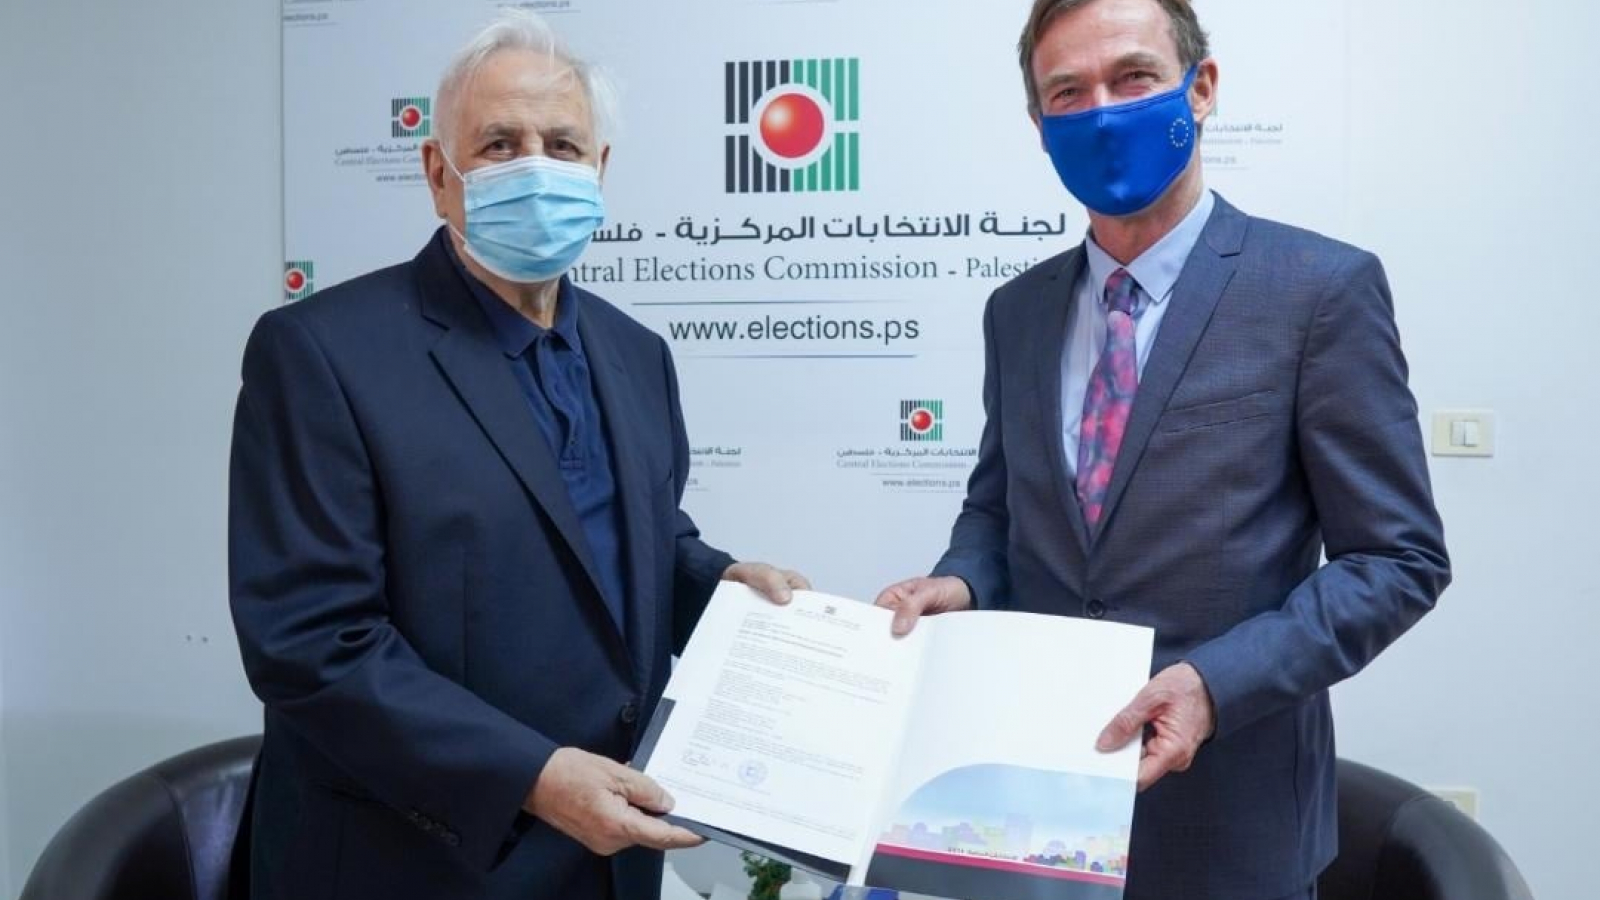 Palestine: EU stands ready to support Palestinian Central Elections Commission